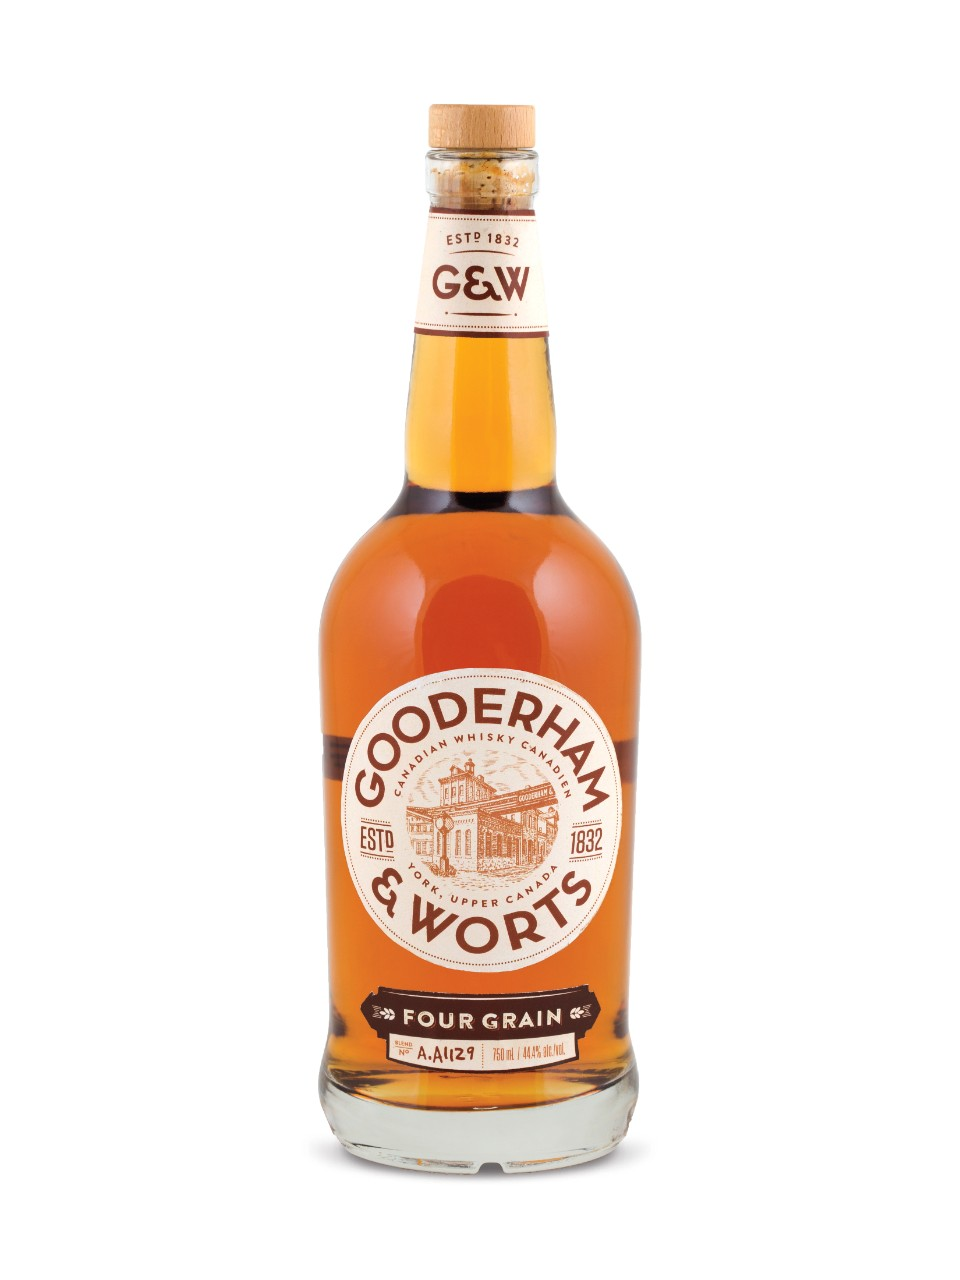 Image result for gooderham and worts